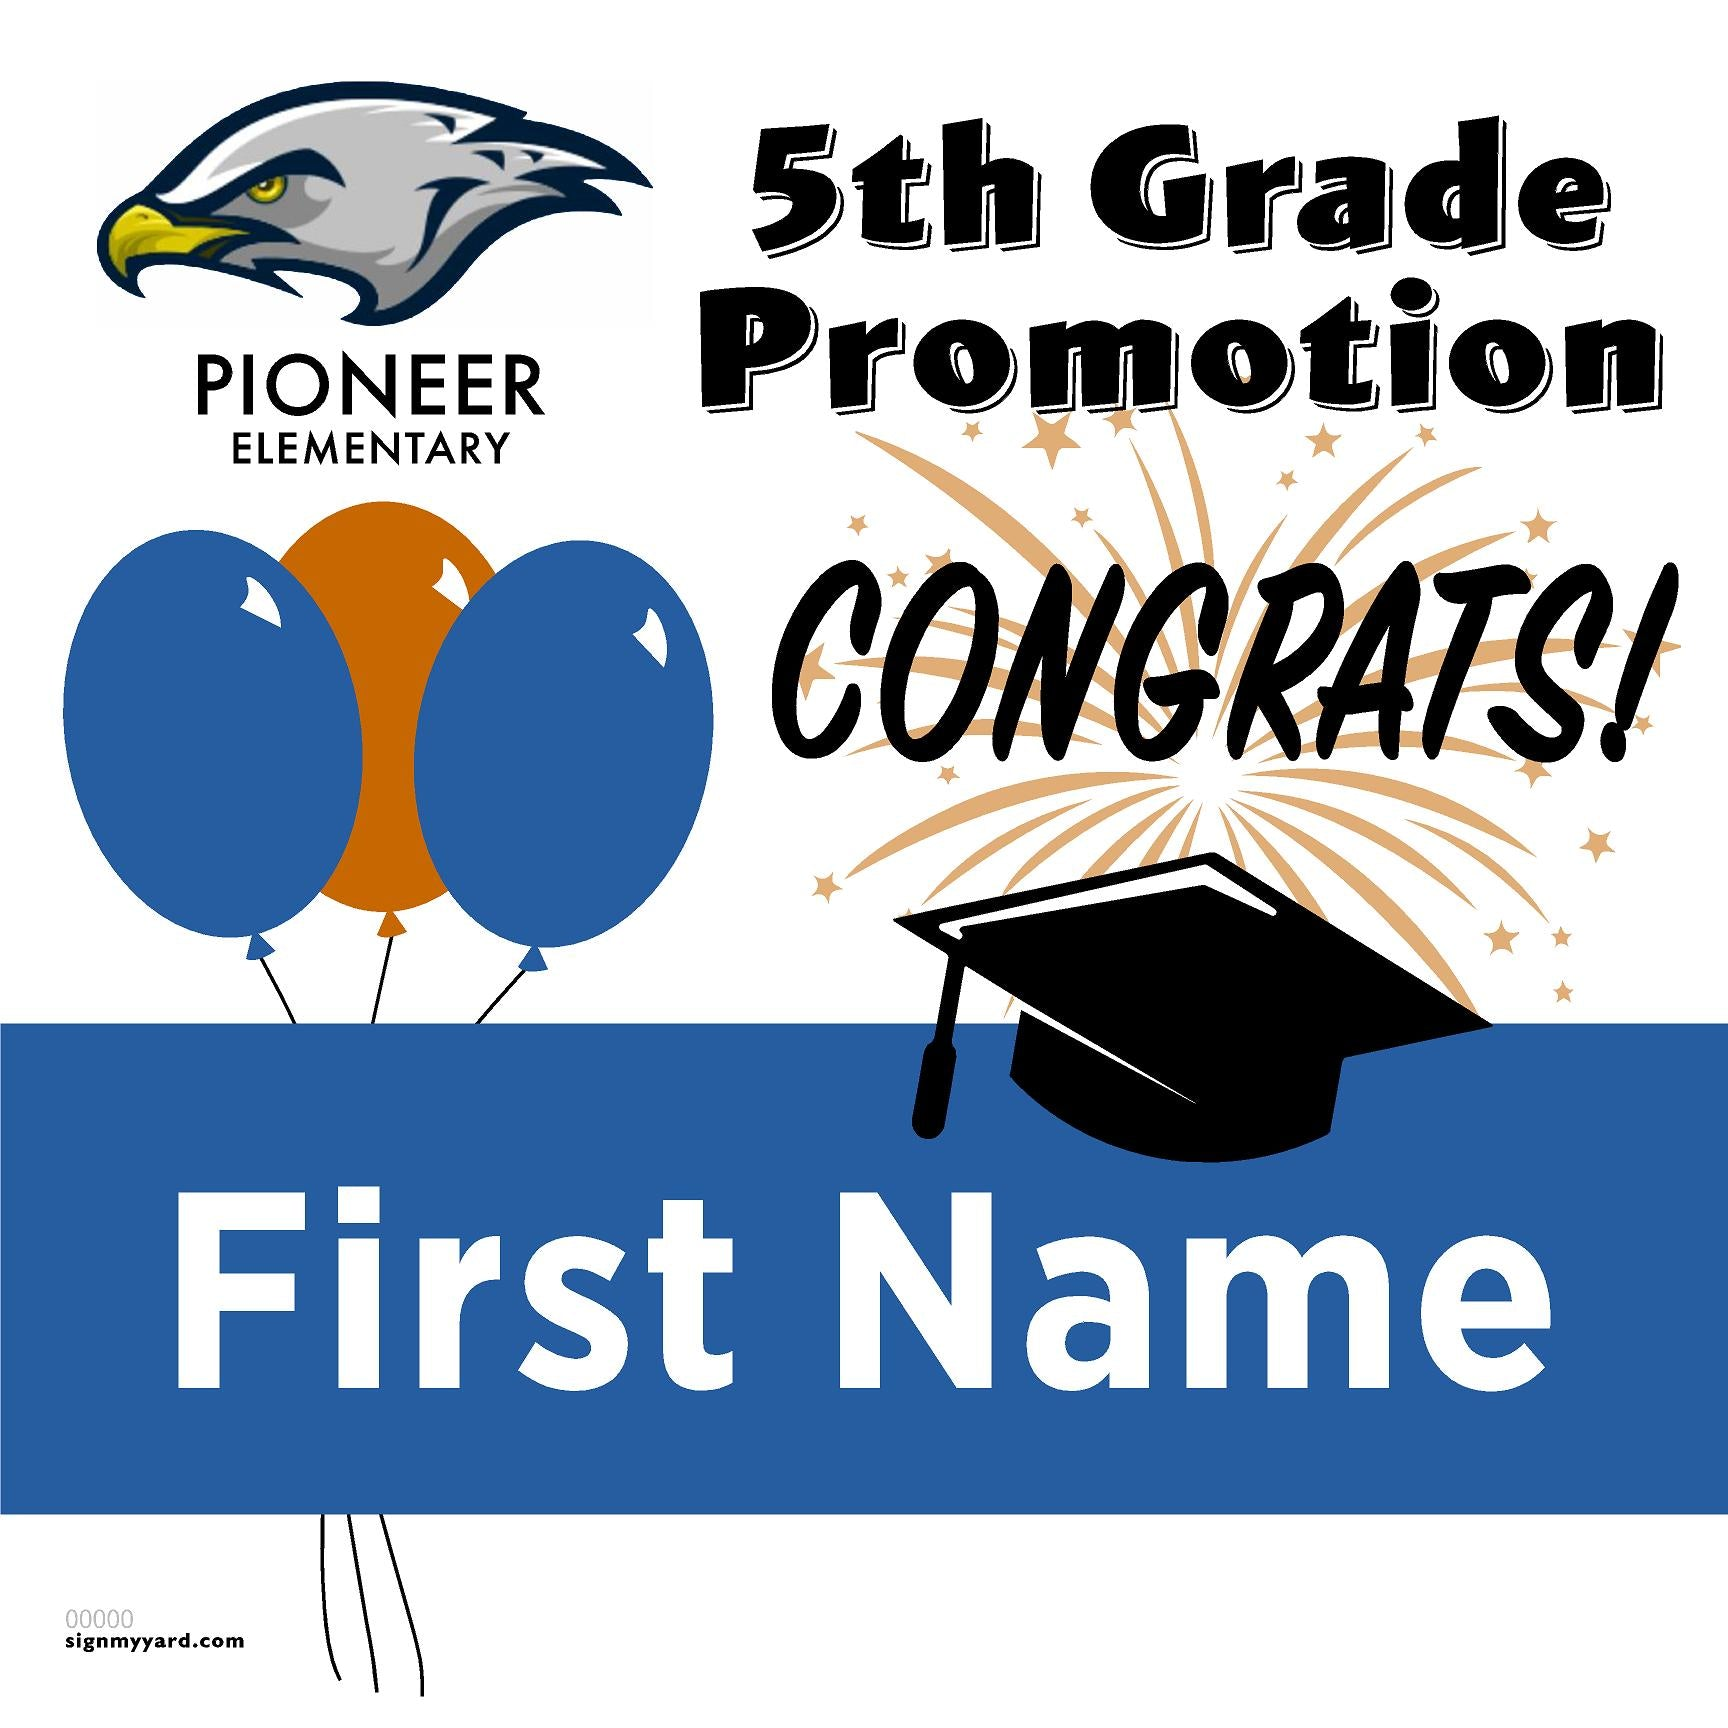 Pioneer Elementary School 5th Grade Promotion 24x24 #shineon2027 Yard Sign (Option A)